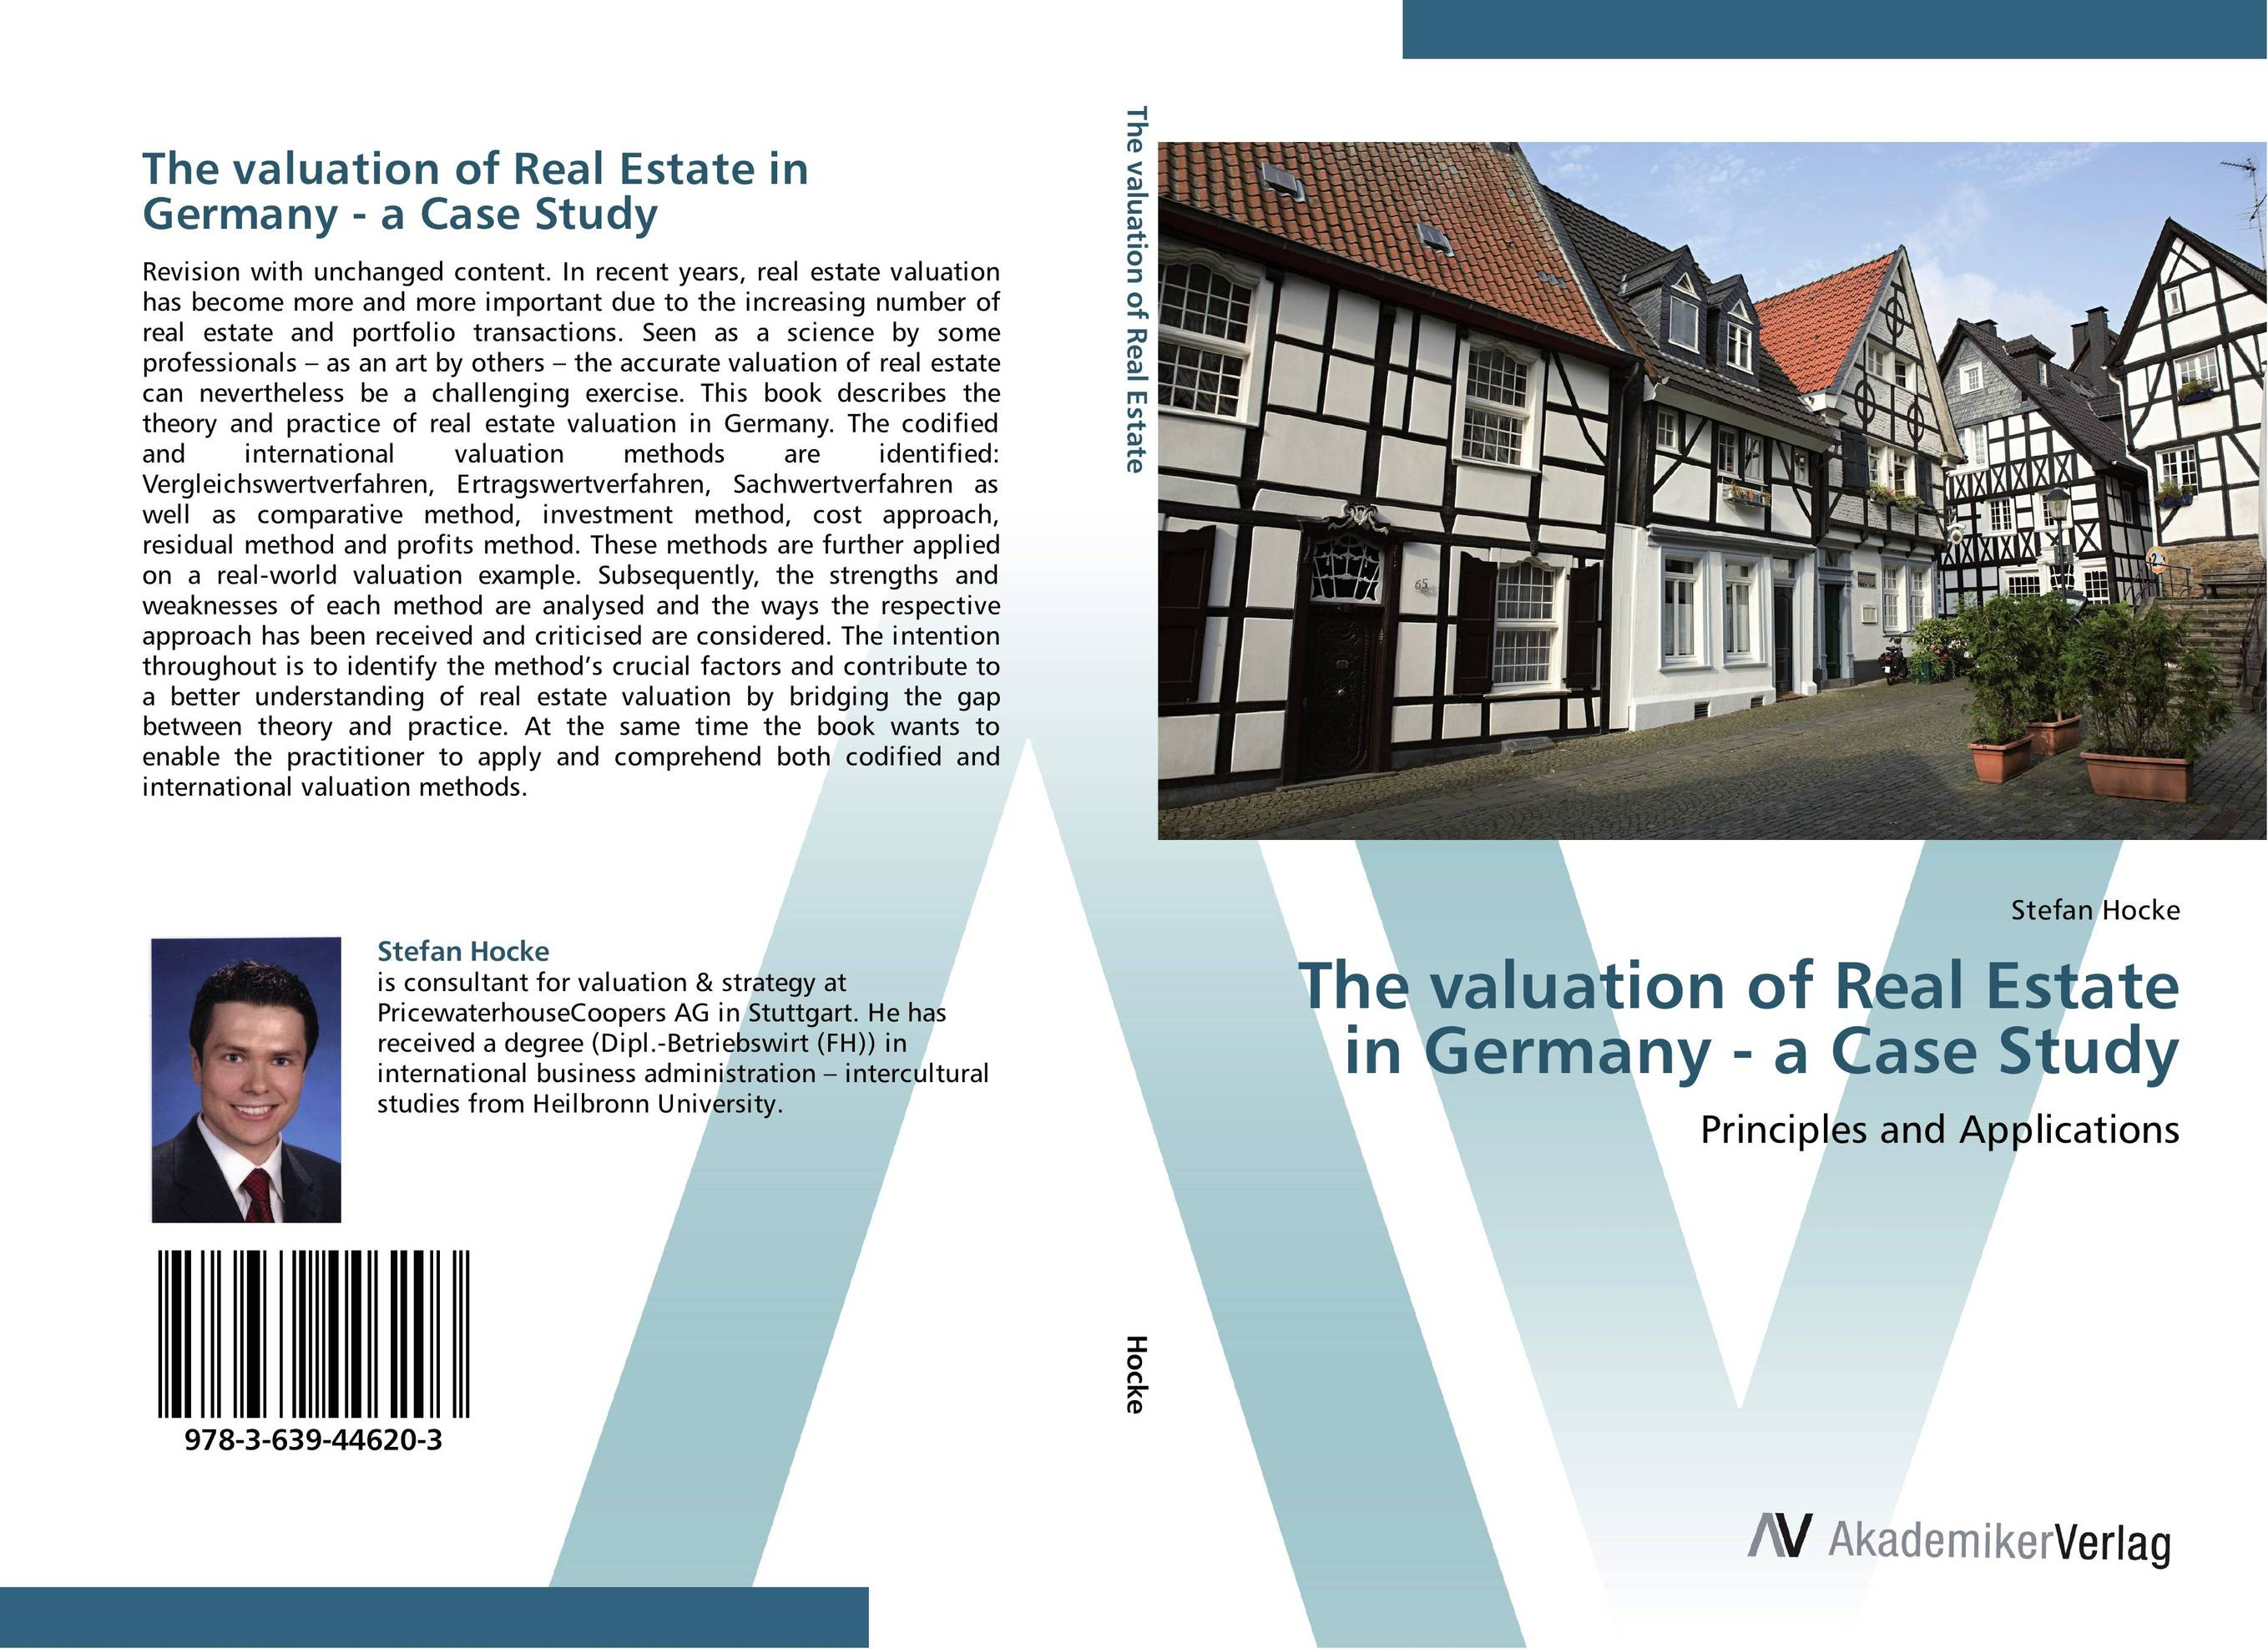 The valuation of Real Estate in Germany - a Case Study